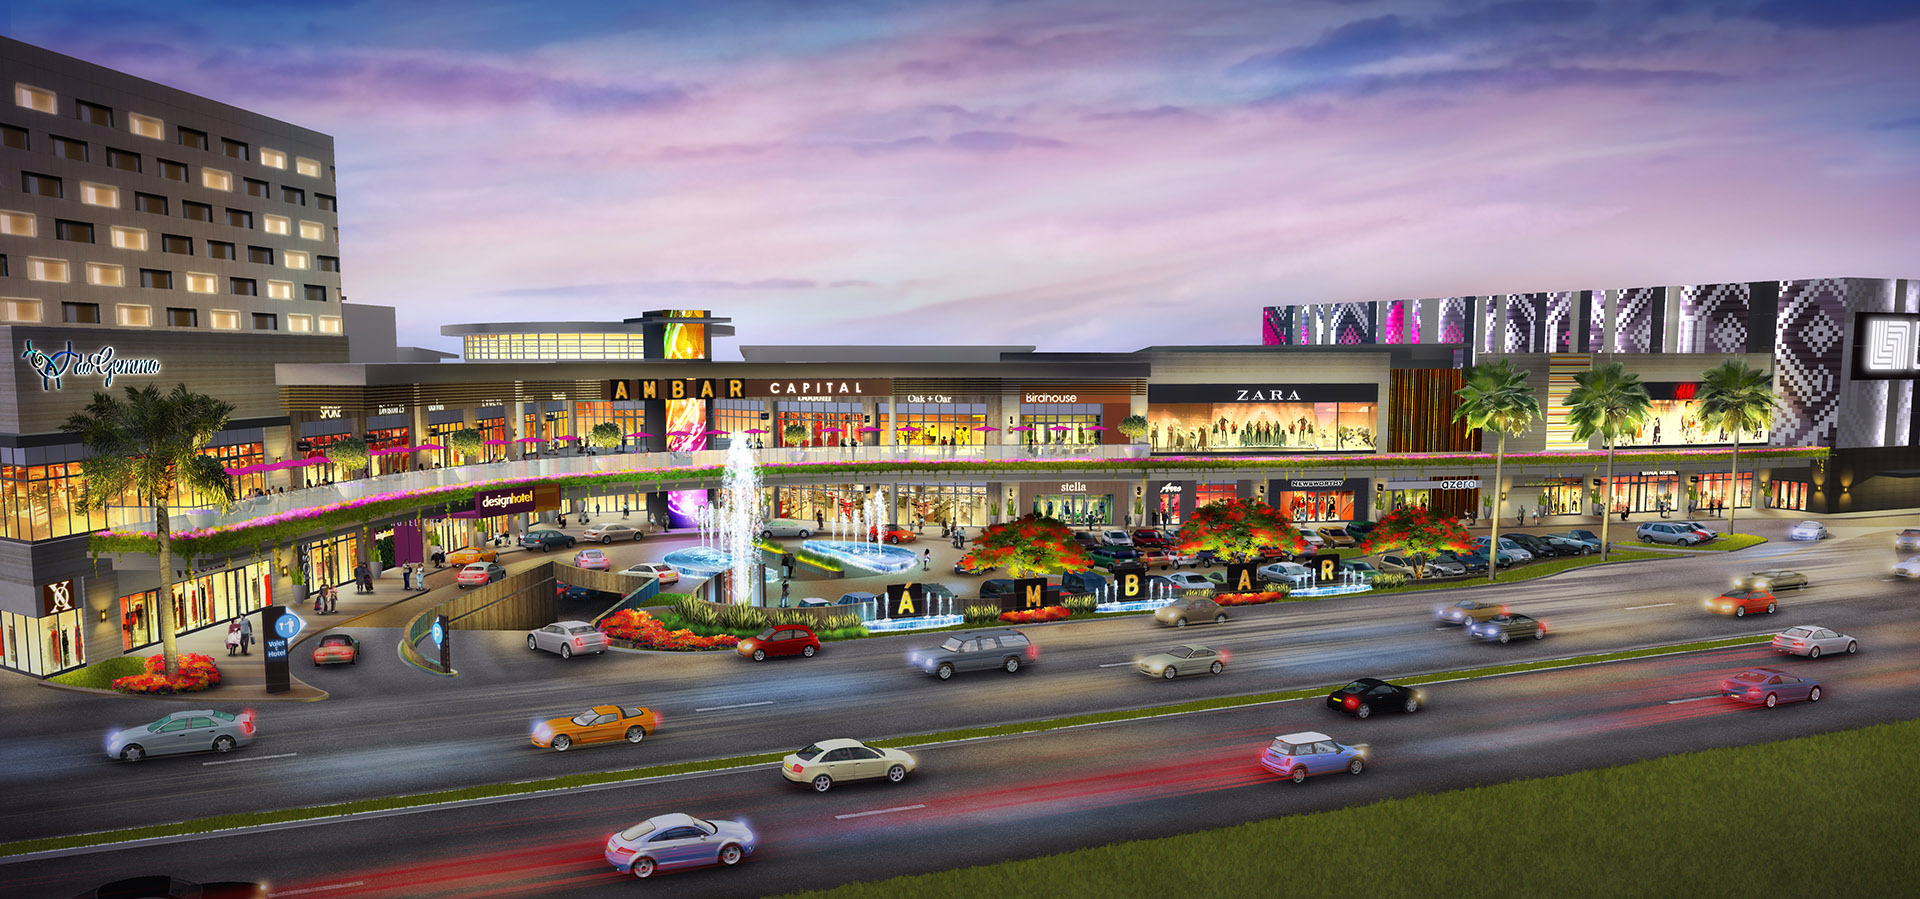 Shopping Center PROJECT PAGE   Kurt Struve Architectural Illustrator     Fashion Mall Exterior